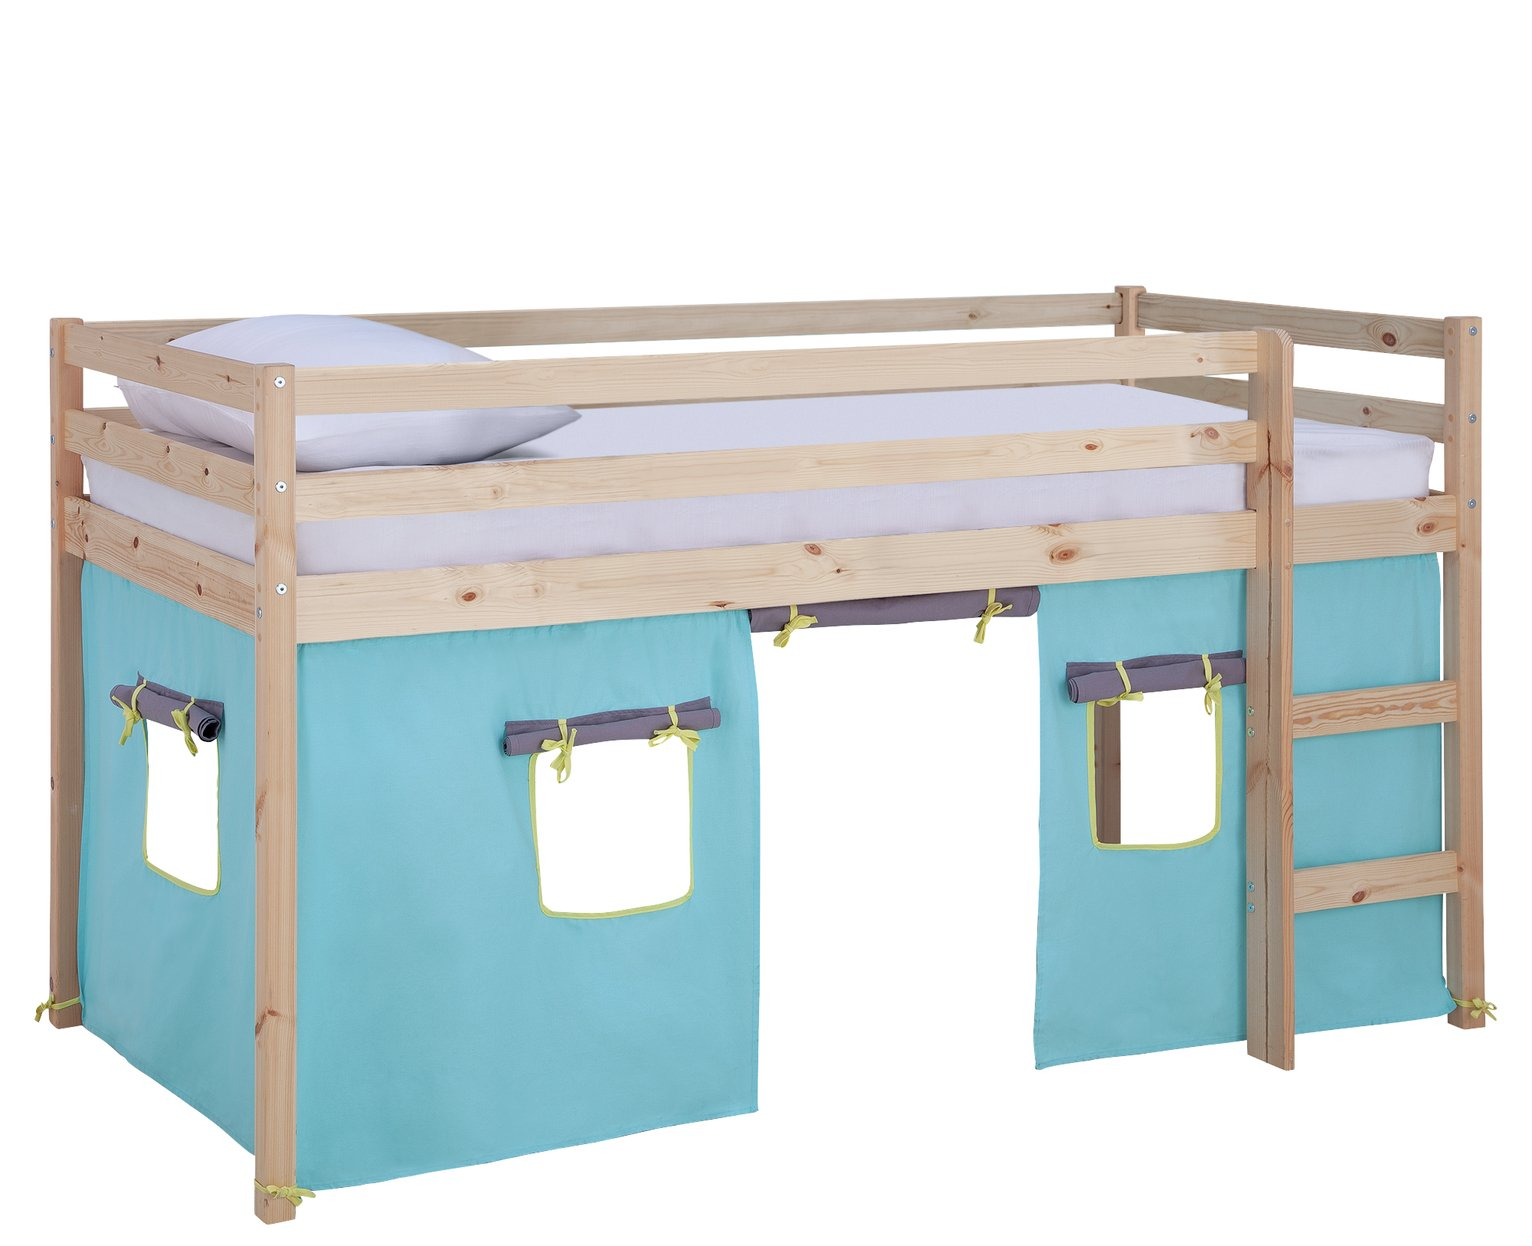 Argos Home Kaycie Pine Mid Sleeper with Blue Tent